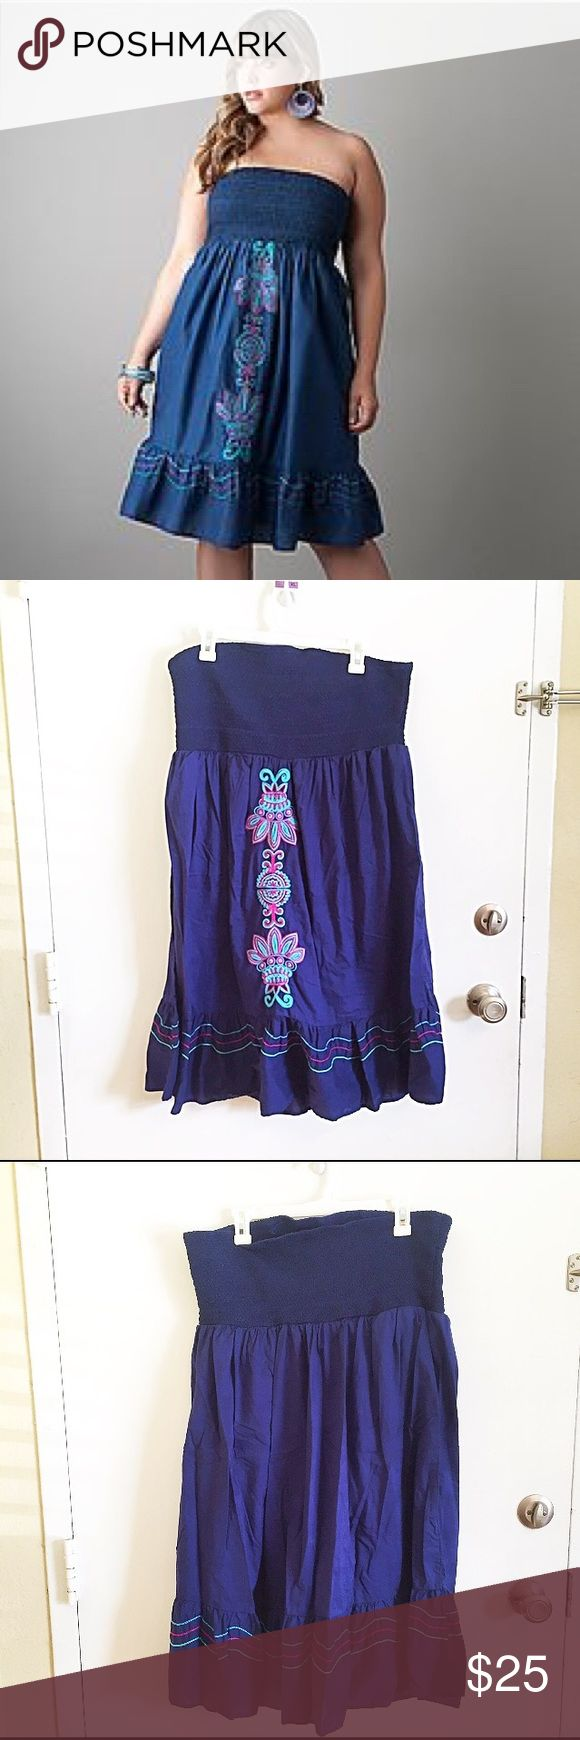 Lane Bryant Strapless Embroidered Dress Plus size blue strapless Embroidered dress from Lane Bryant. Size 18/20. #plus #plussize #blue #strapless #embroidered #dress #lanebryant #tropical #aztec #beachy #vacay #flattering #punkydoodle  No modeling Smoke and pet free home I do discount bundles Lane Bryant Dresses Strapless